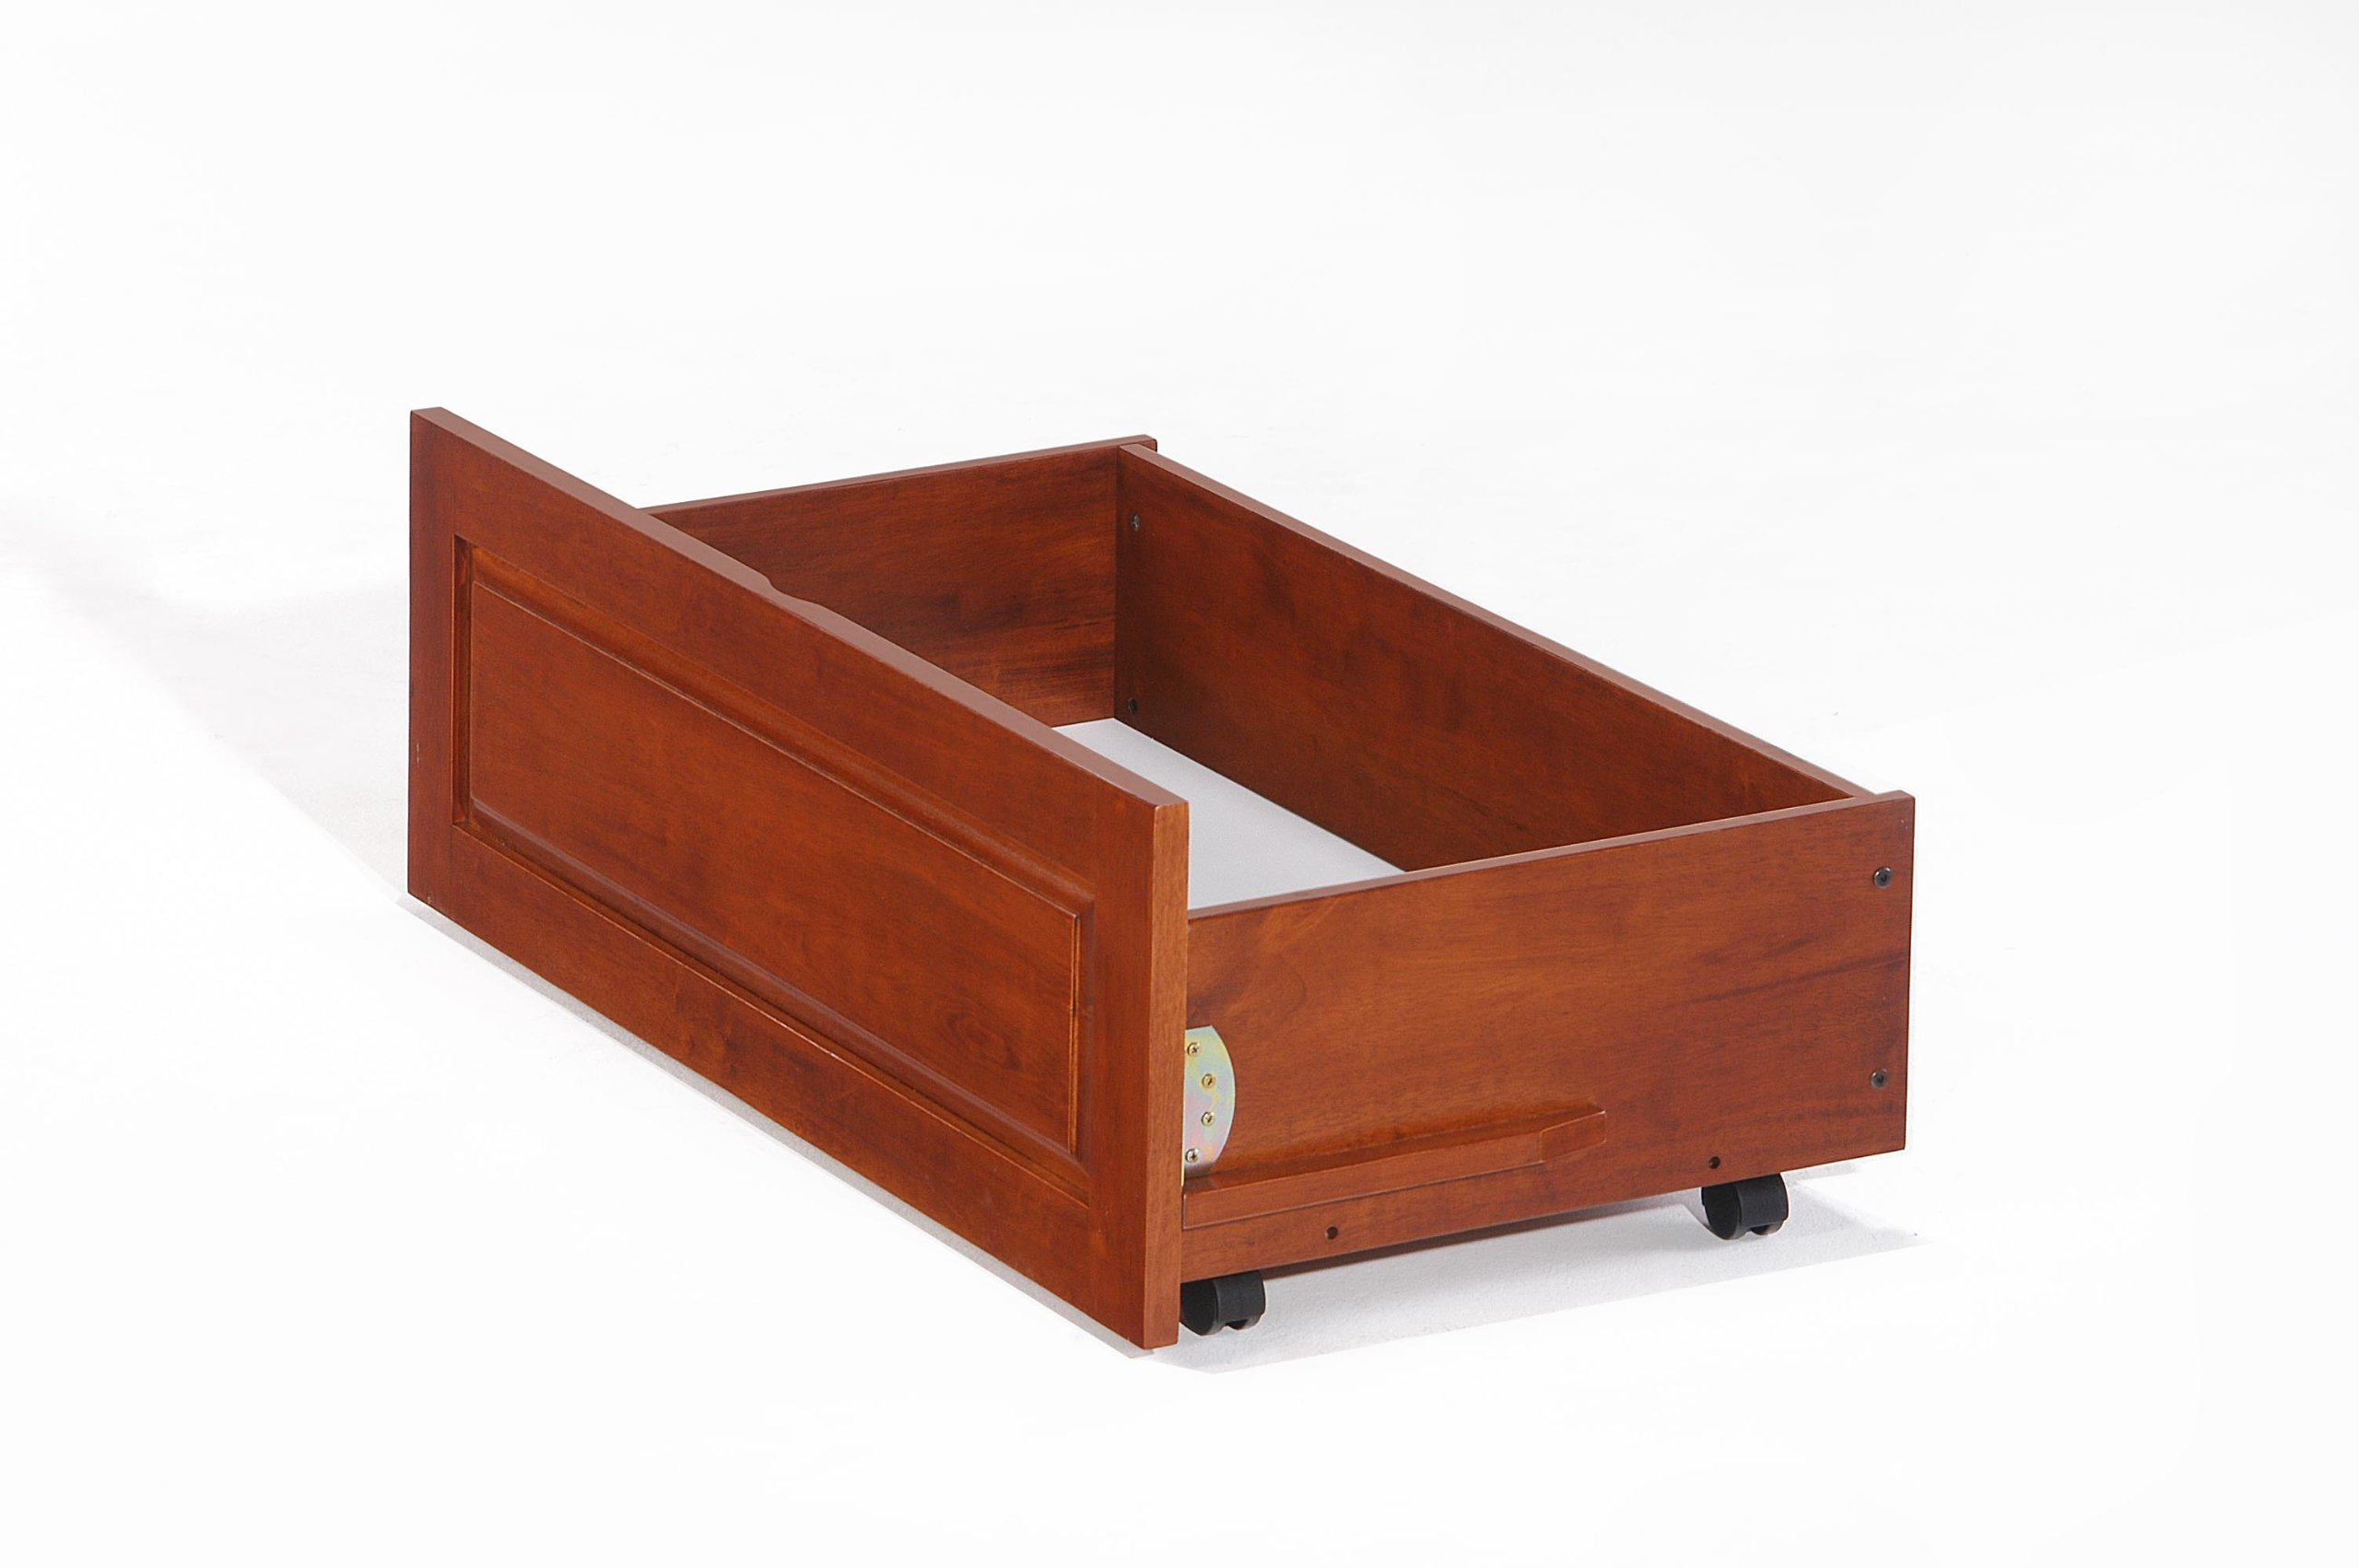 Night & Day Furniture PDR-QEN/EKG-CH Drawer Set (2 Drawers) for Queen or King K Series beds, Cherry